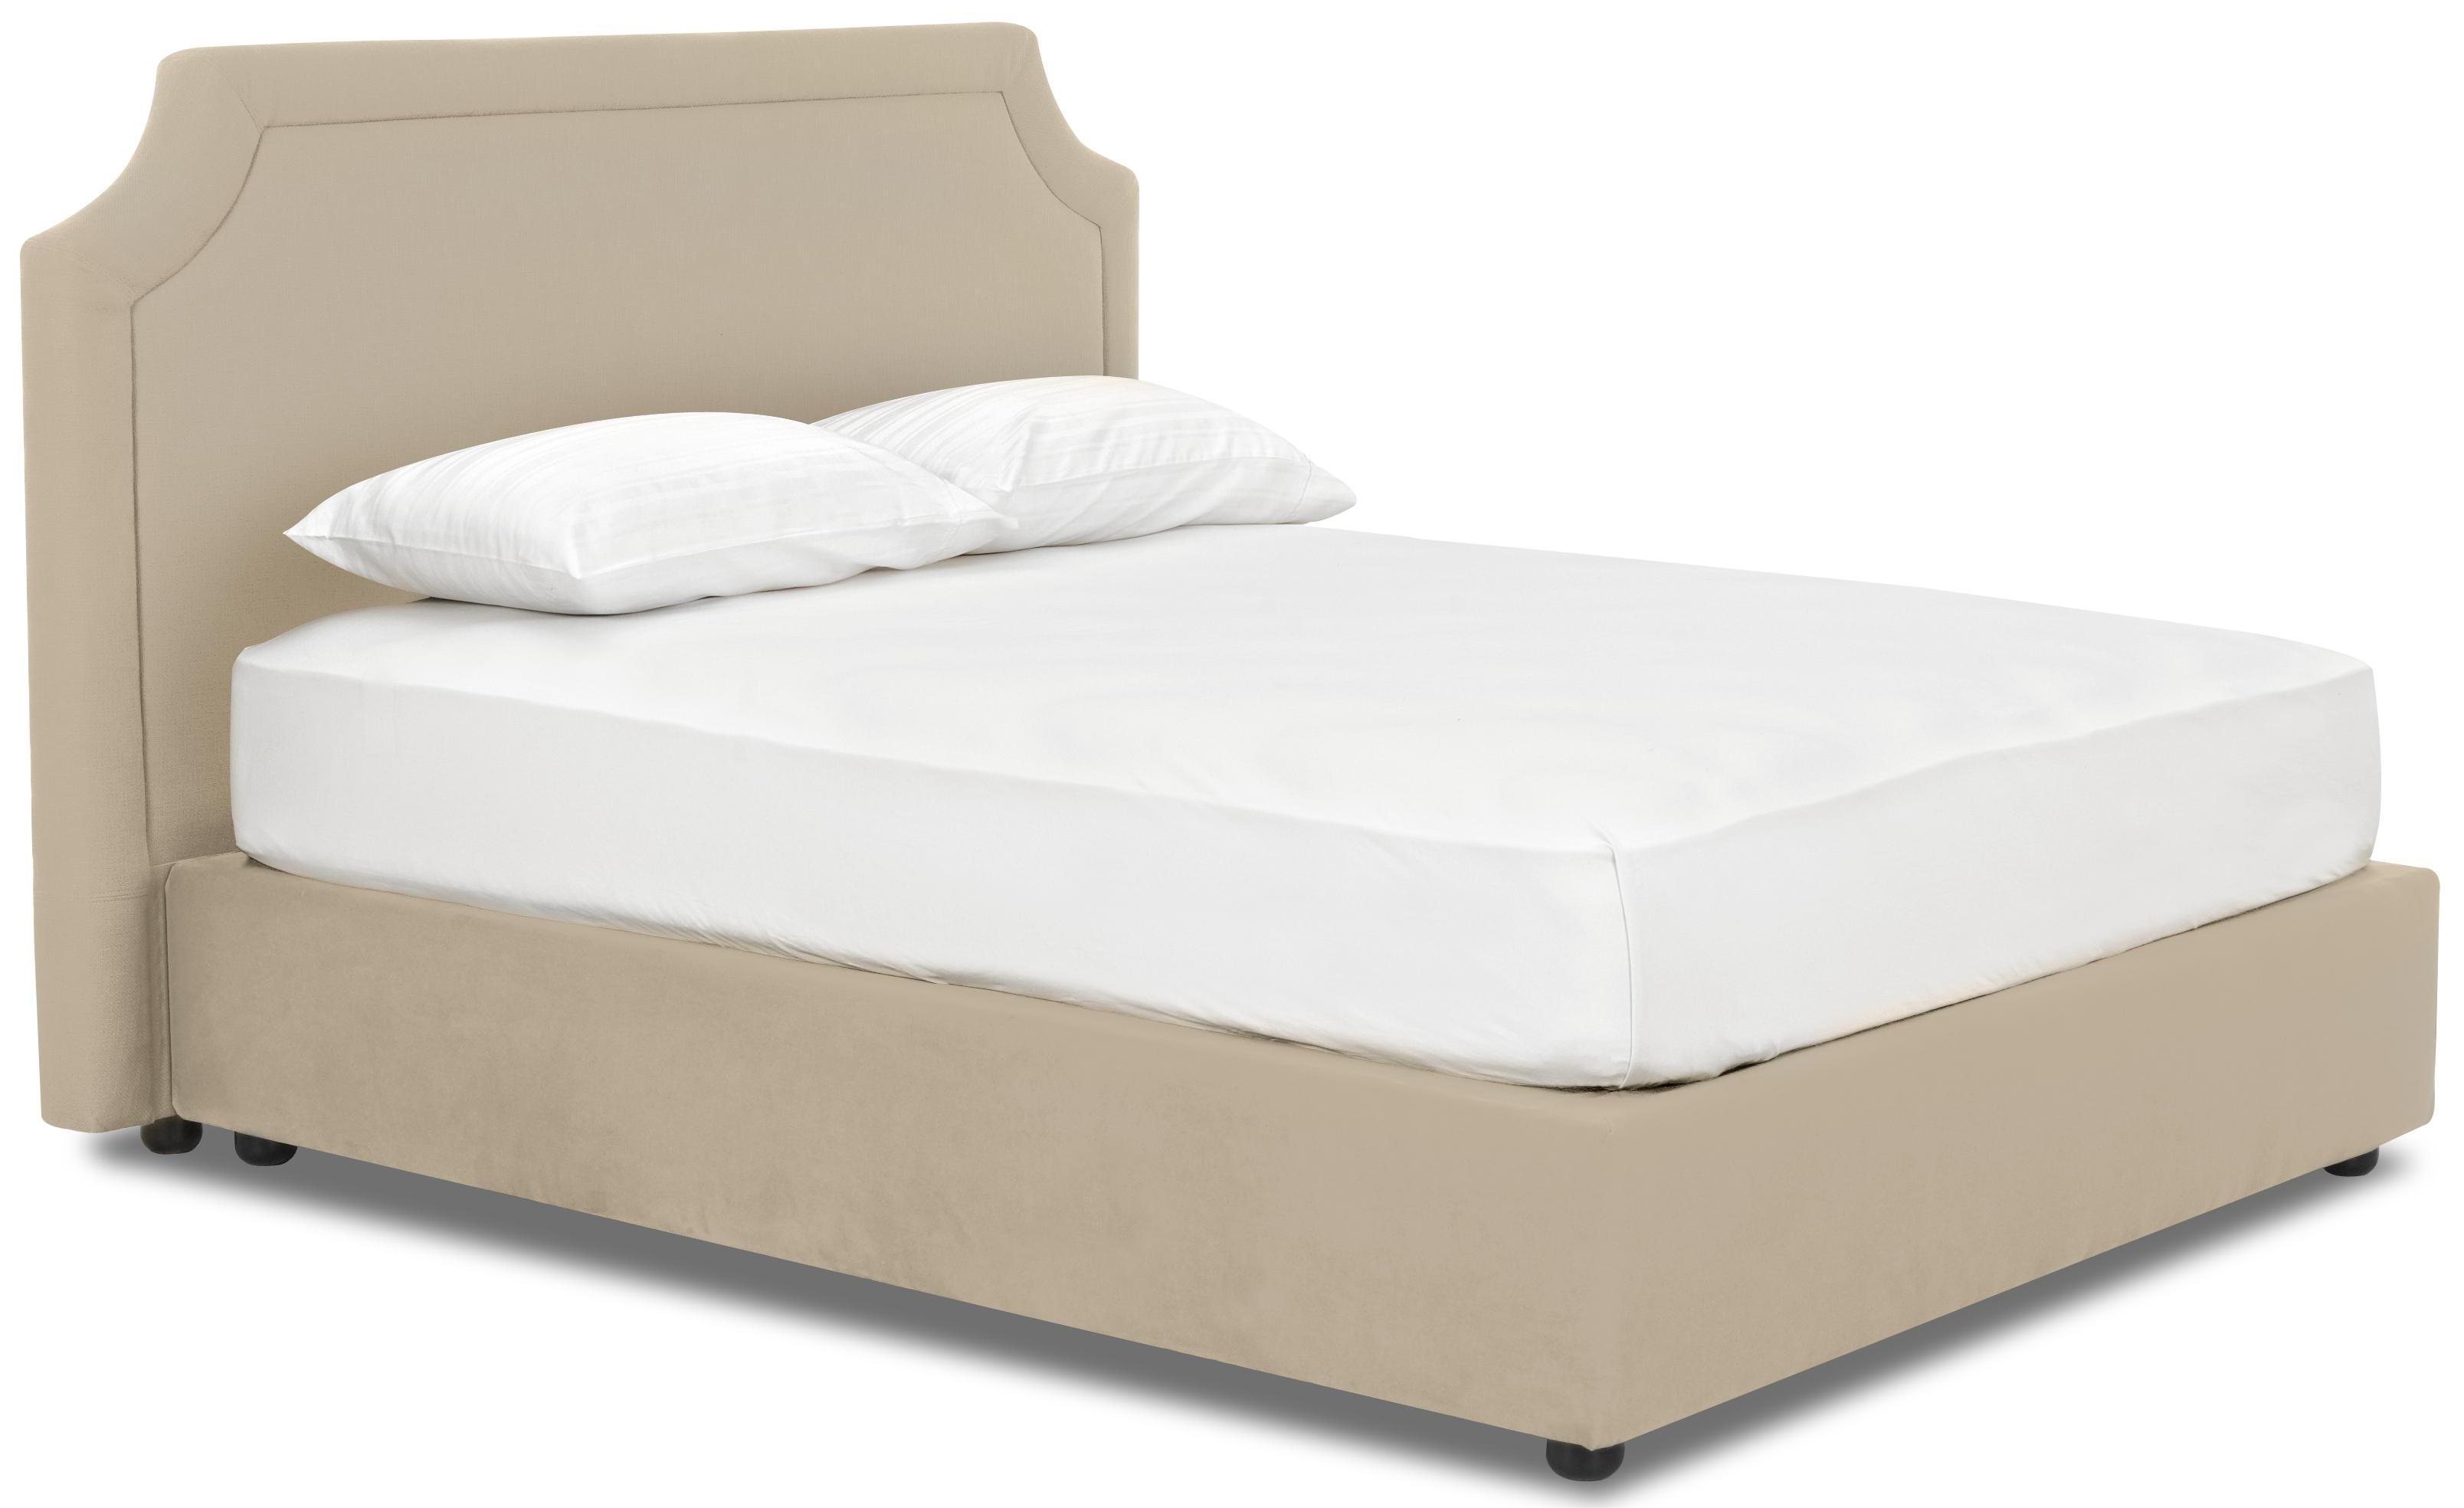 Queen Upholstered Platform Bed By Klaussner Wolf And